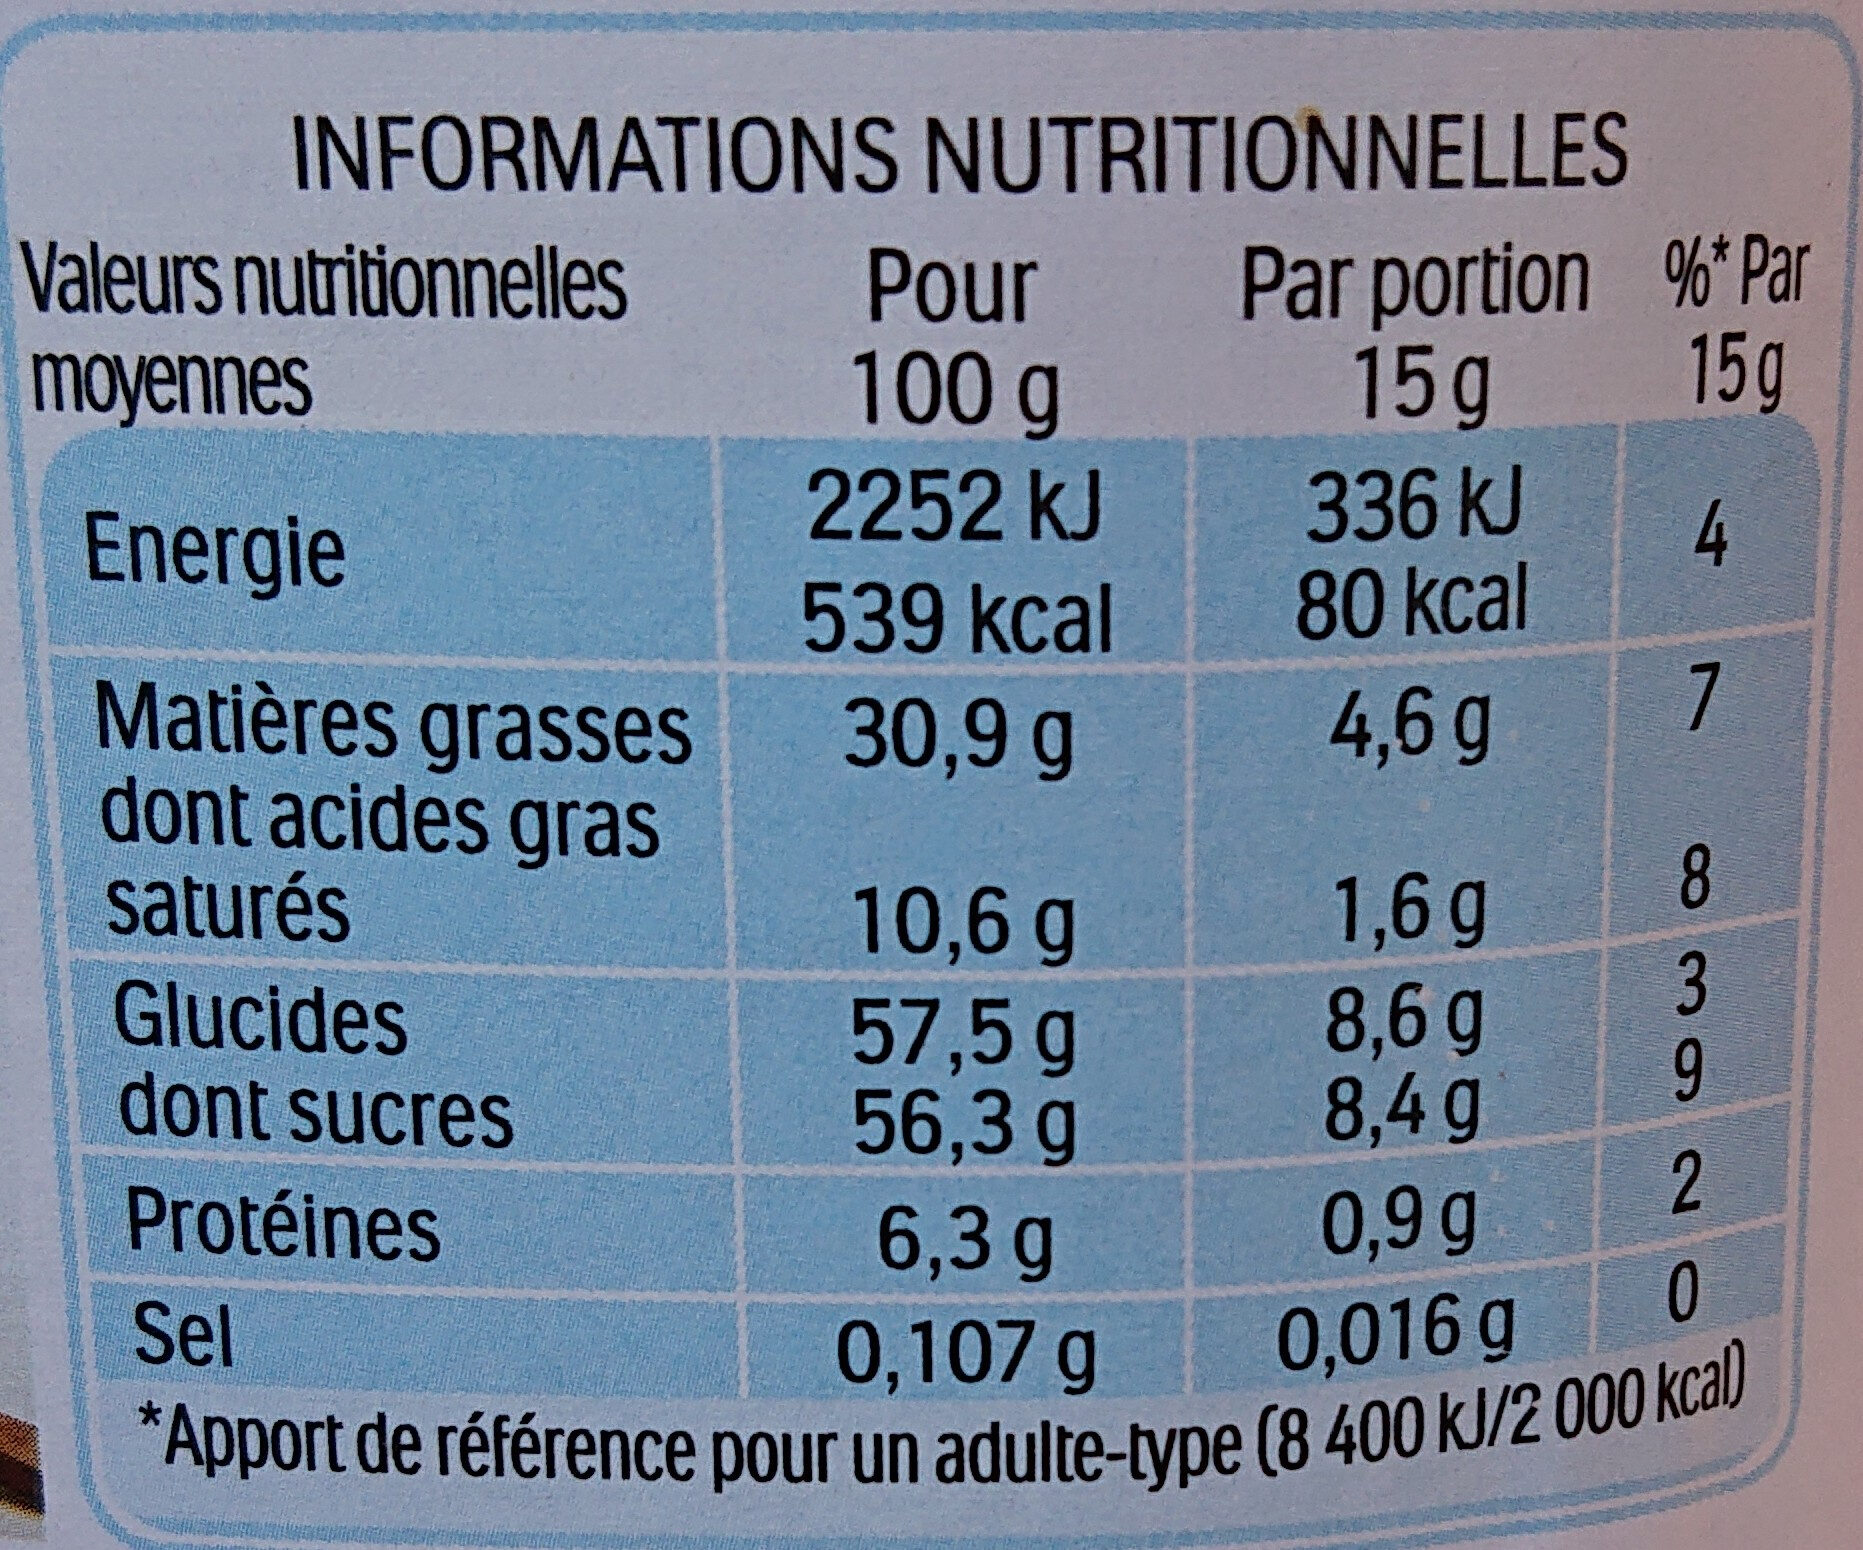 Nutella pate a tartiner noisettes-cacao t630 pot de - Nutrition facts - fr